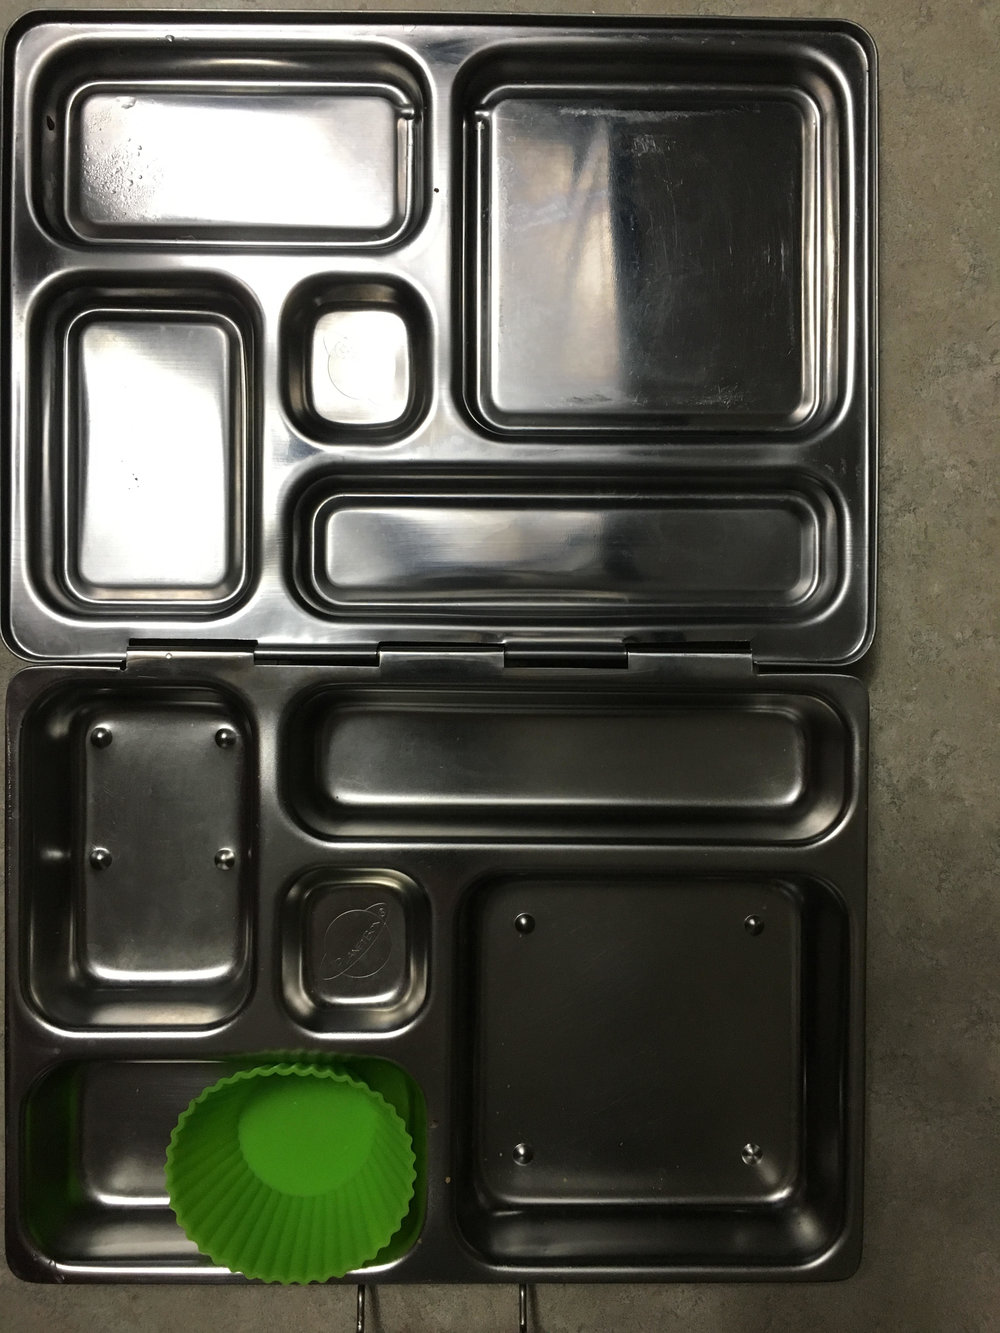 These are our lunch containers.